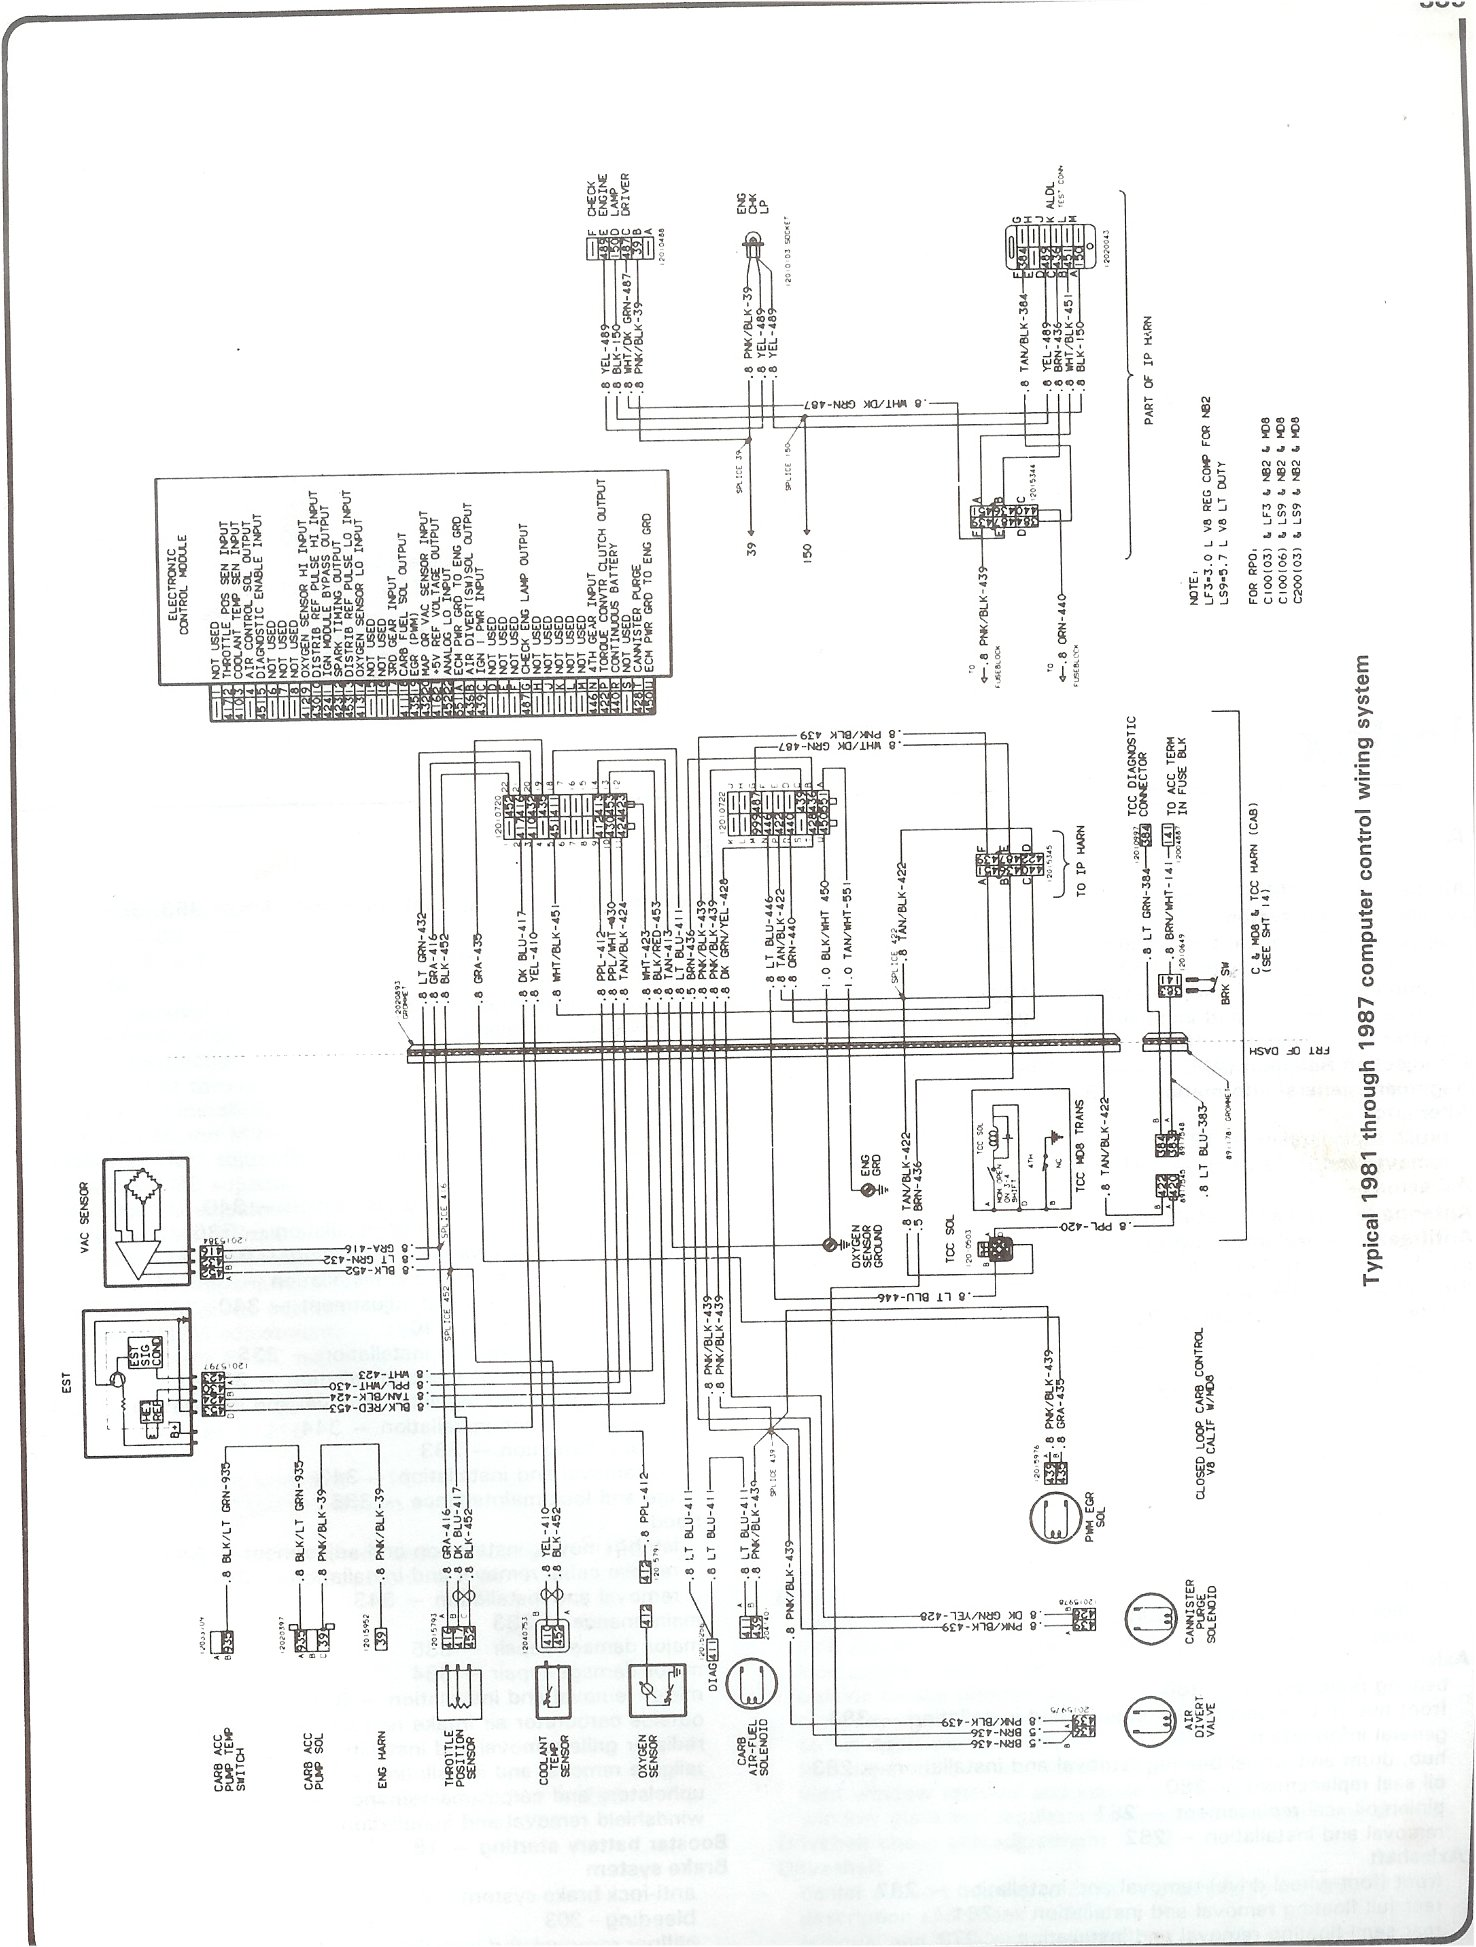 81 87_computer_control_wiring complete 73 87 wiring diagrams chevy wiring harness diagram at mifinder.co